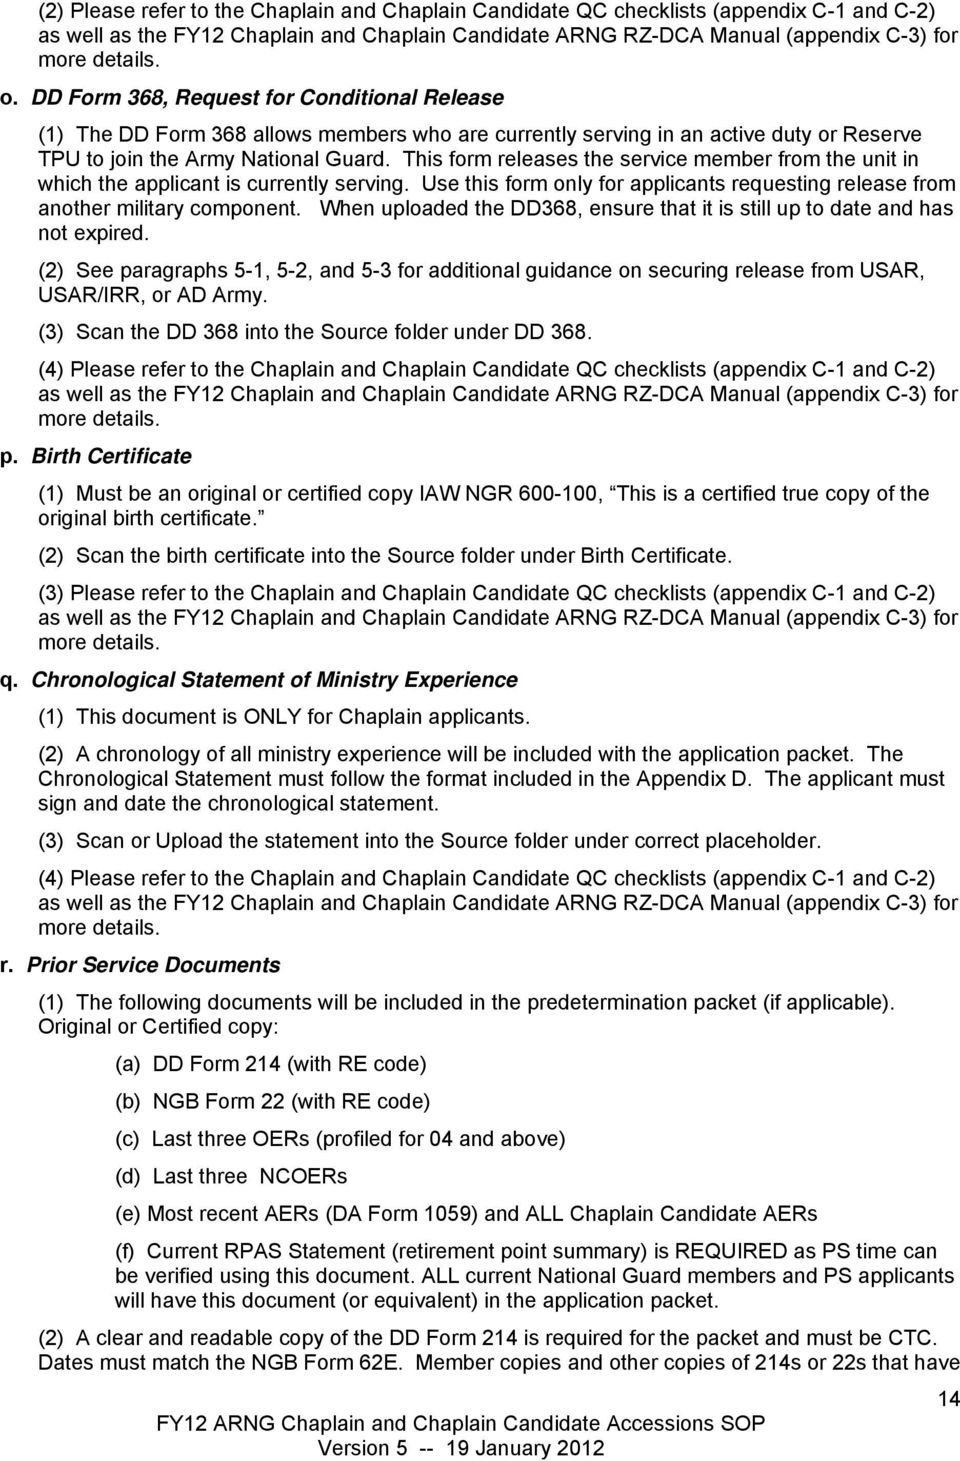 Fy12 Army National Guard Standard Operating Procedures For Chaplain